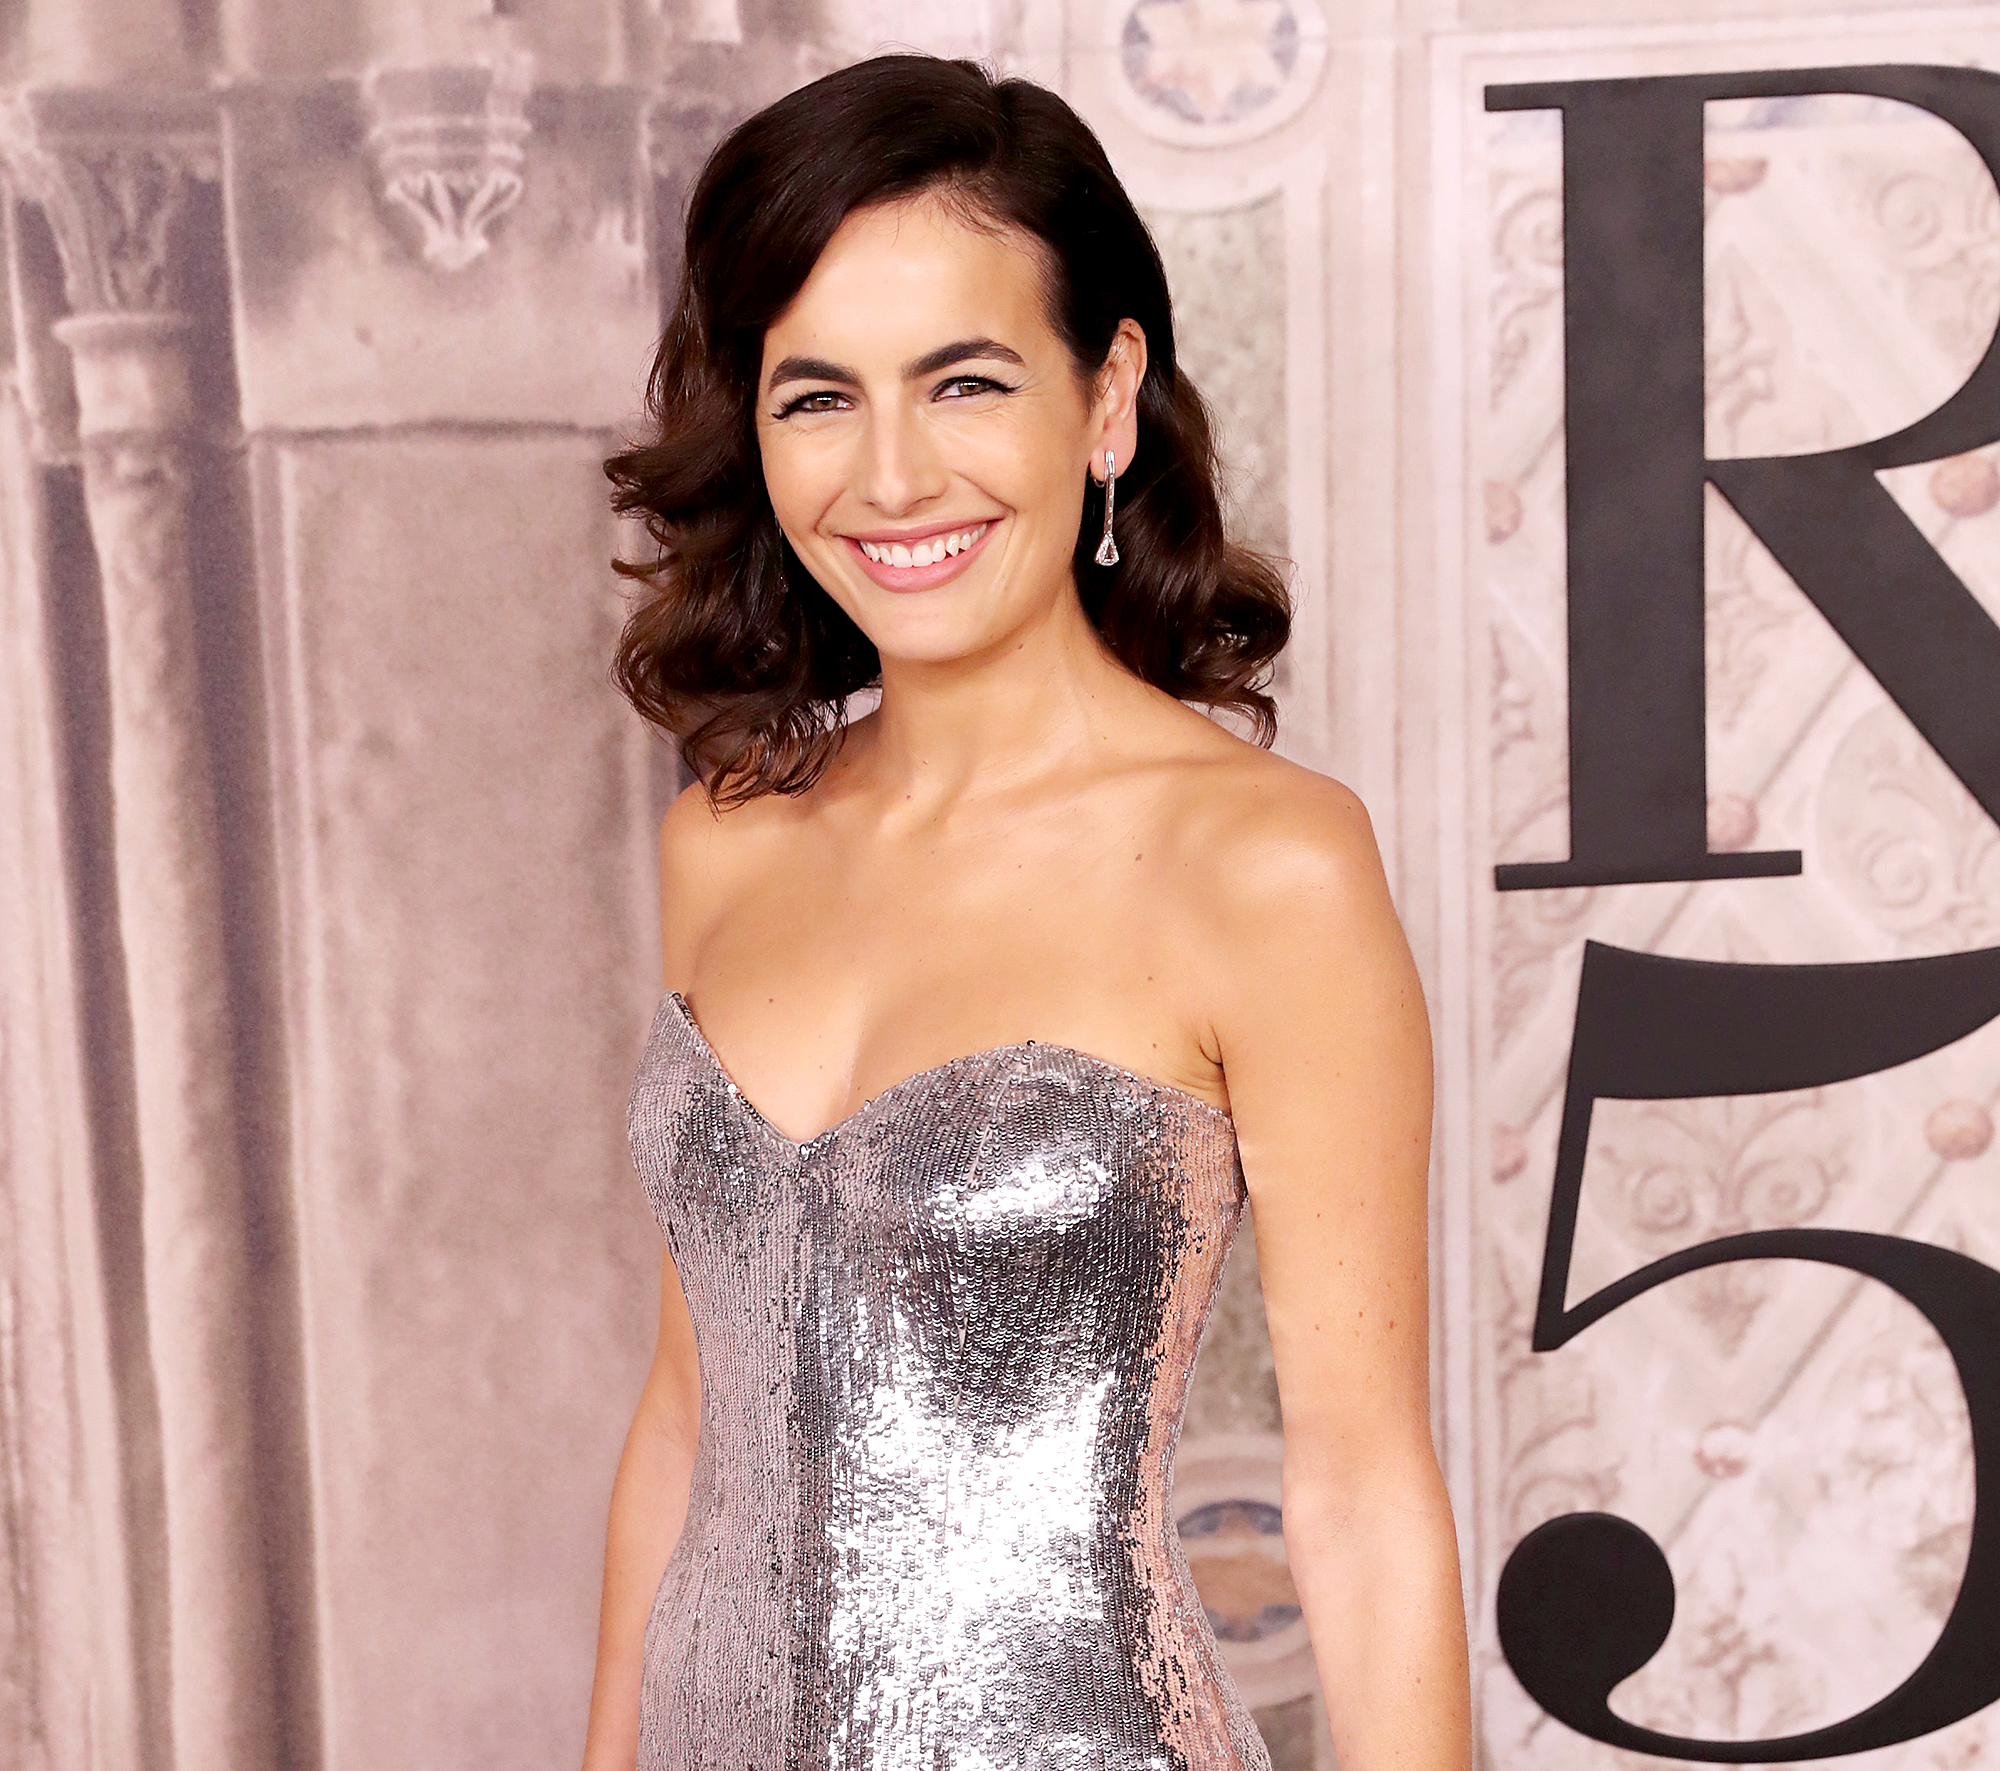 Camilla-Belle-golden-globes-cocktail - Camilla Belle attends the Ralph Lauren fashion show during New York Fashion Week at Bethesda Terrace on September 7, 2018 in New York City.